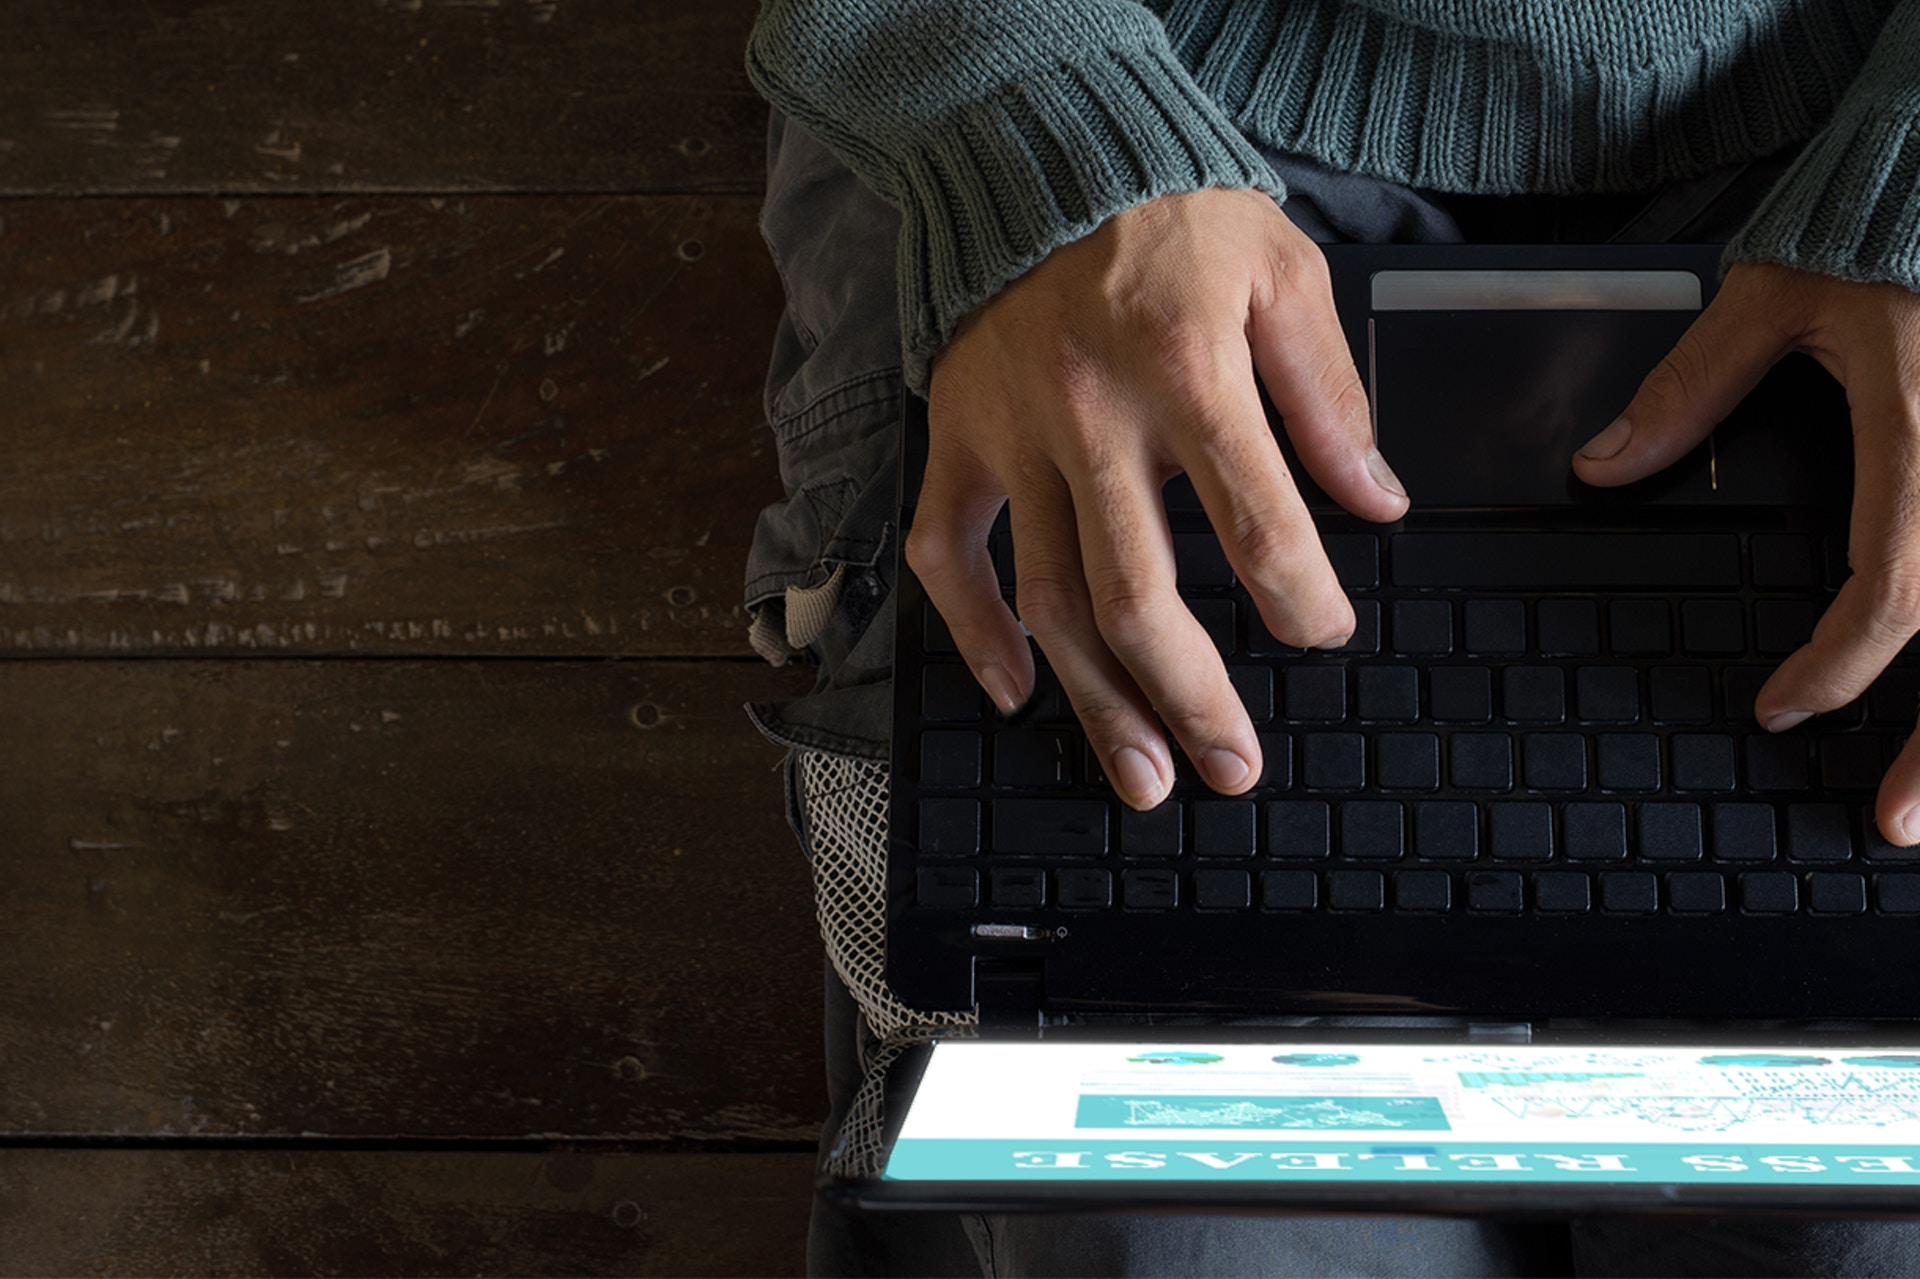 hands typing on a laptop screen